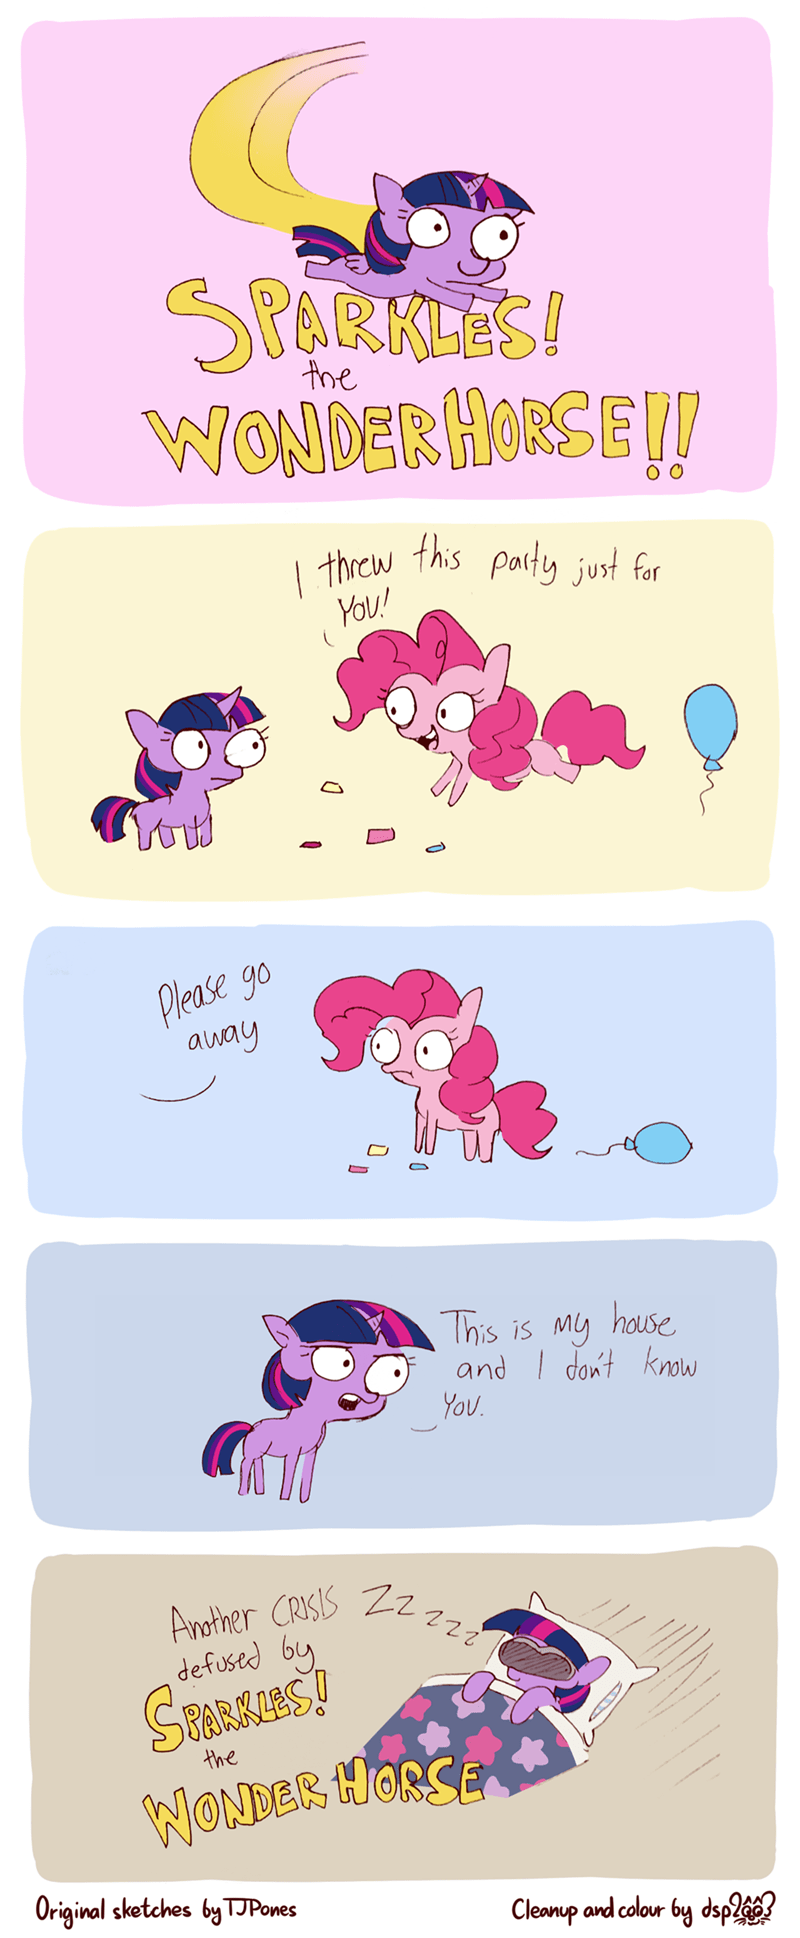 tj pones dsp2003 twilight sparkle pinkie pie comic - 9102510592